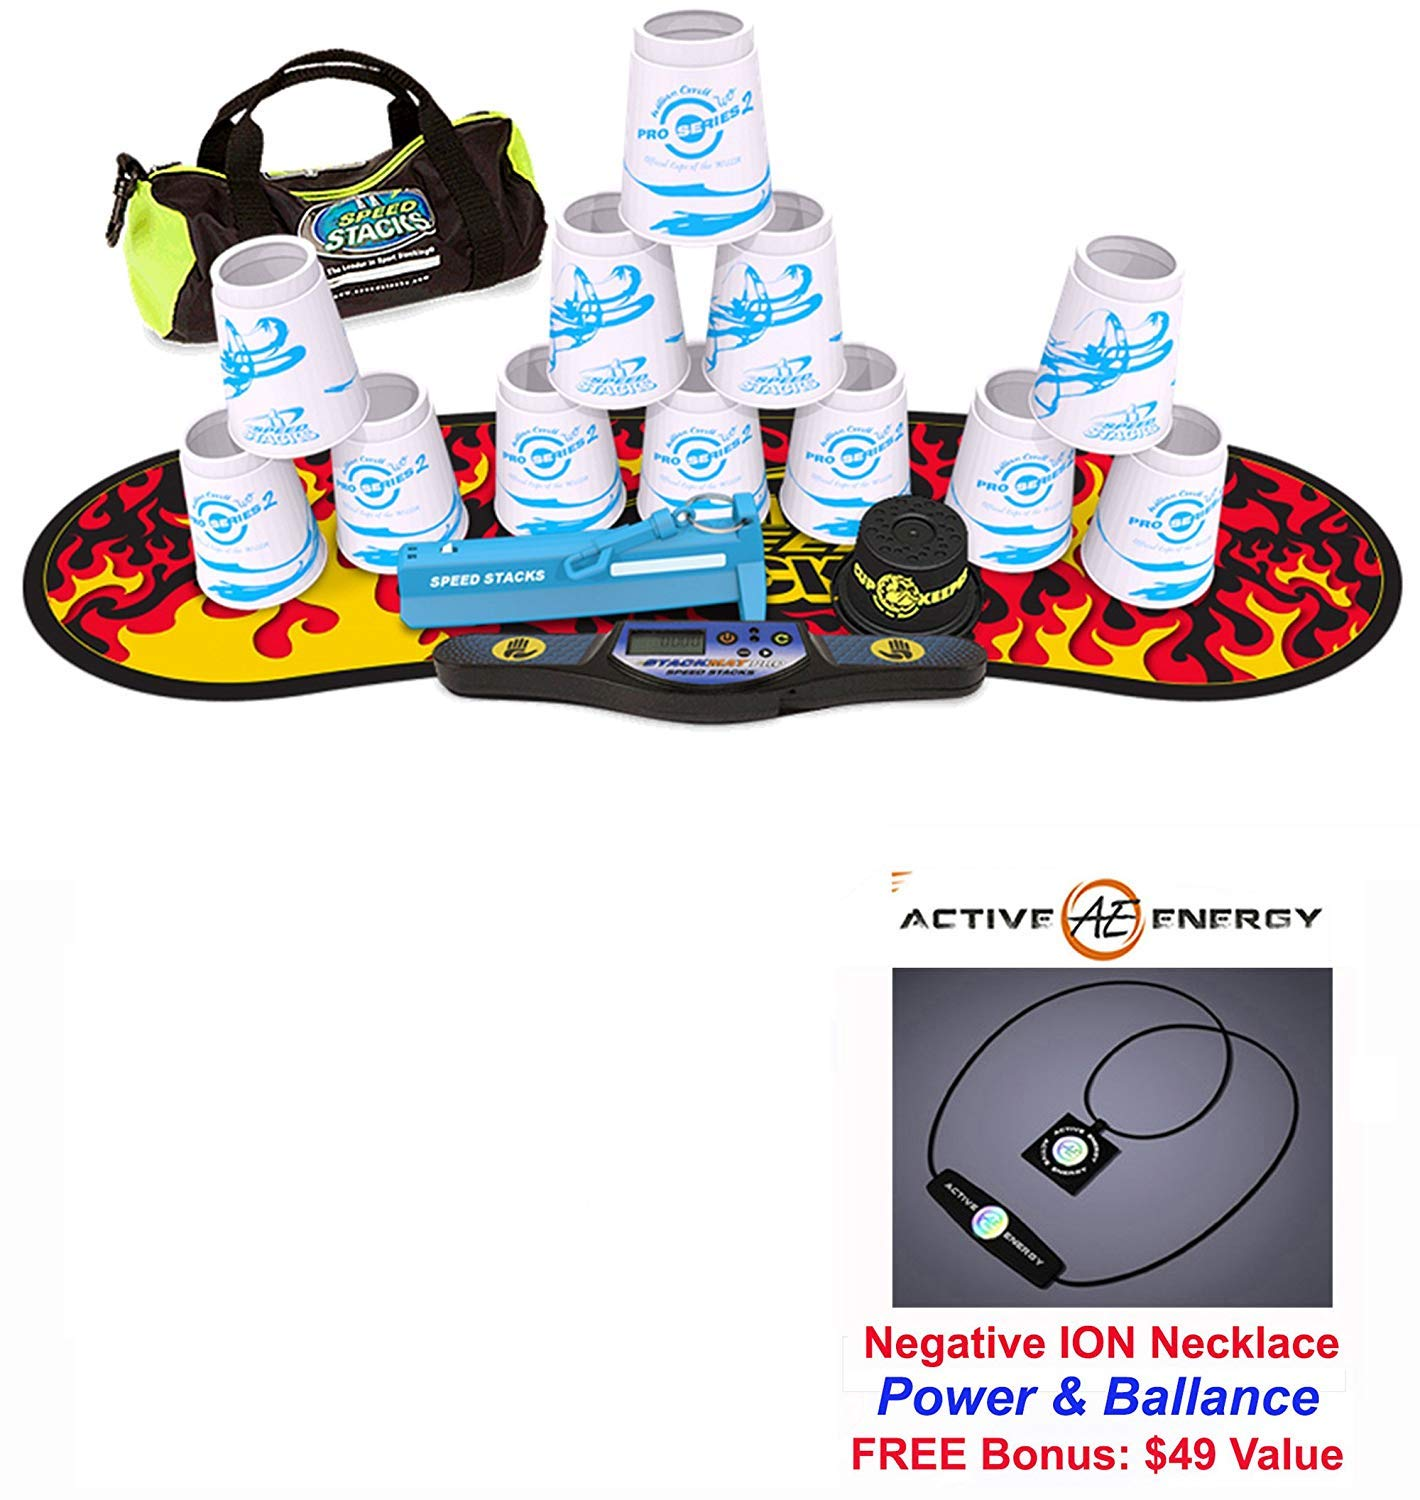 Speed Stacks Custom Combo Set 12 WHITE PRO SERIES 4'' Cups, Cup Keeper, Quick Release Stem, Pro Timer, Gen 3 Premium Black Flame Mat, 6 Snap Tops, Gear Bag + FREE Active Energy Necklace $49